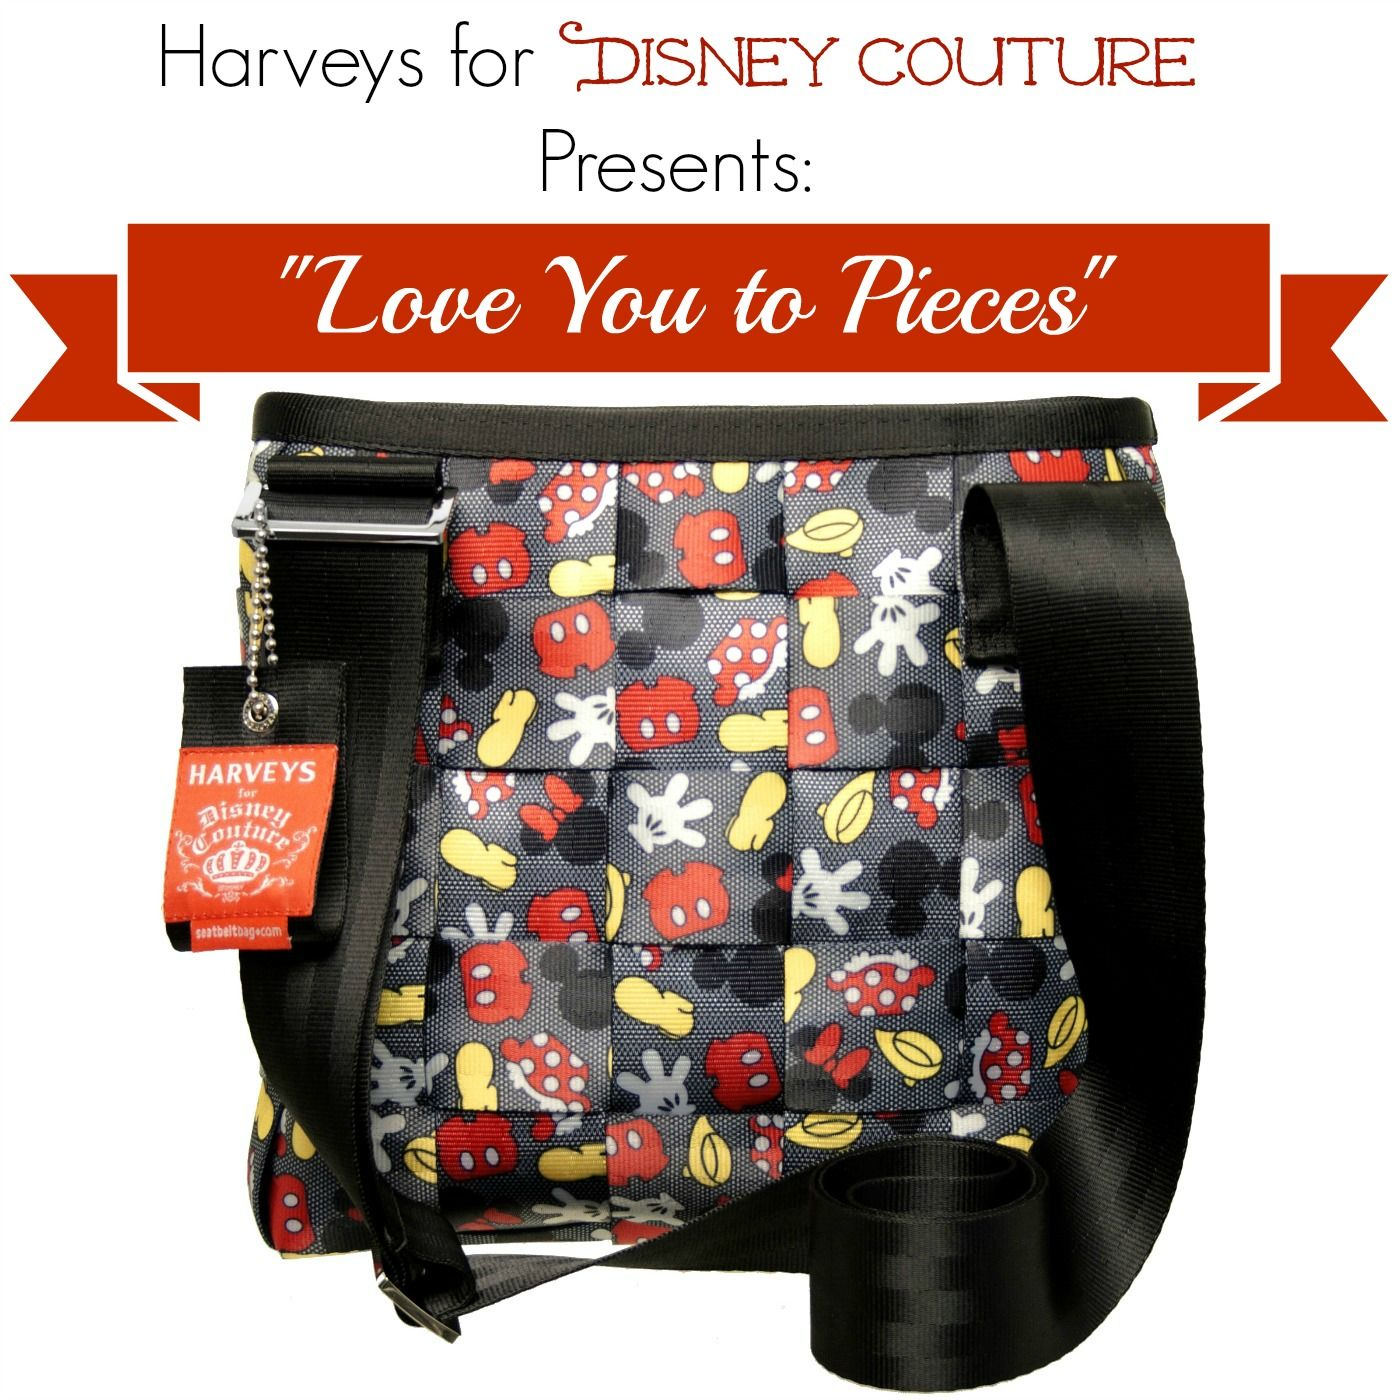 Harveys for Disney Couture Brand new Seatbelt Bag Collection